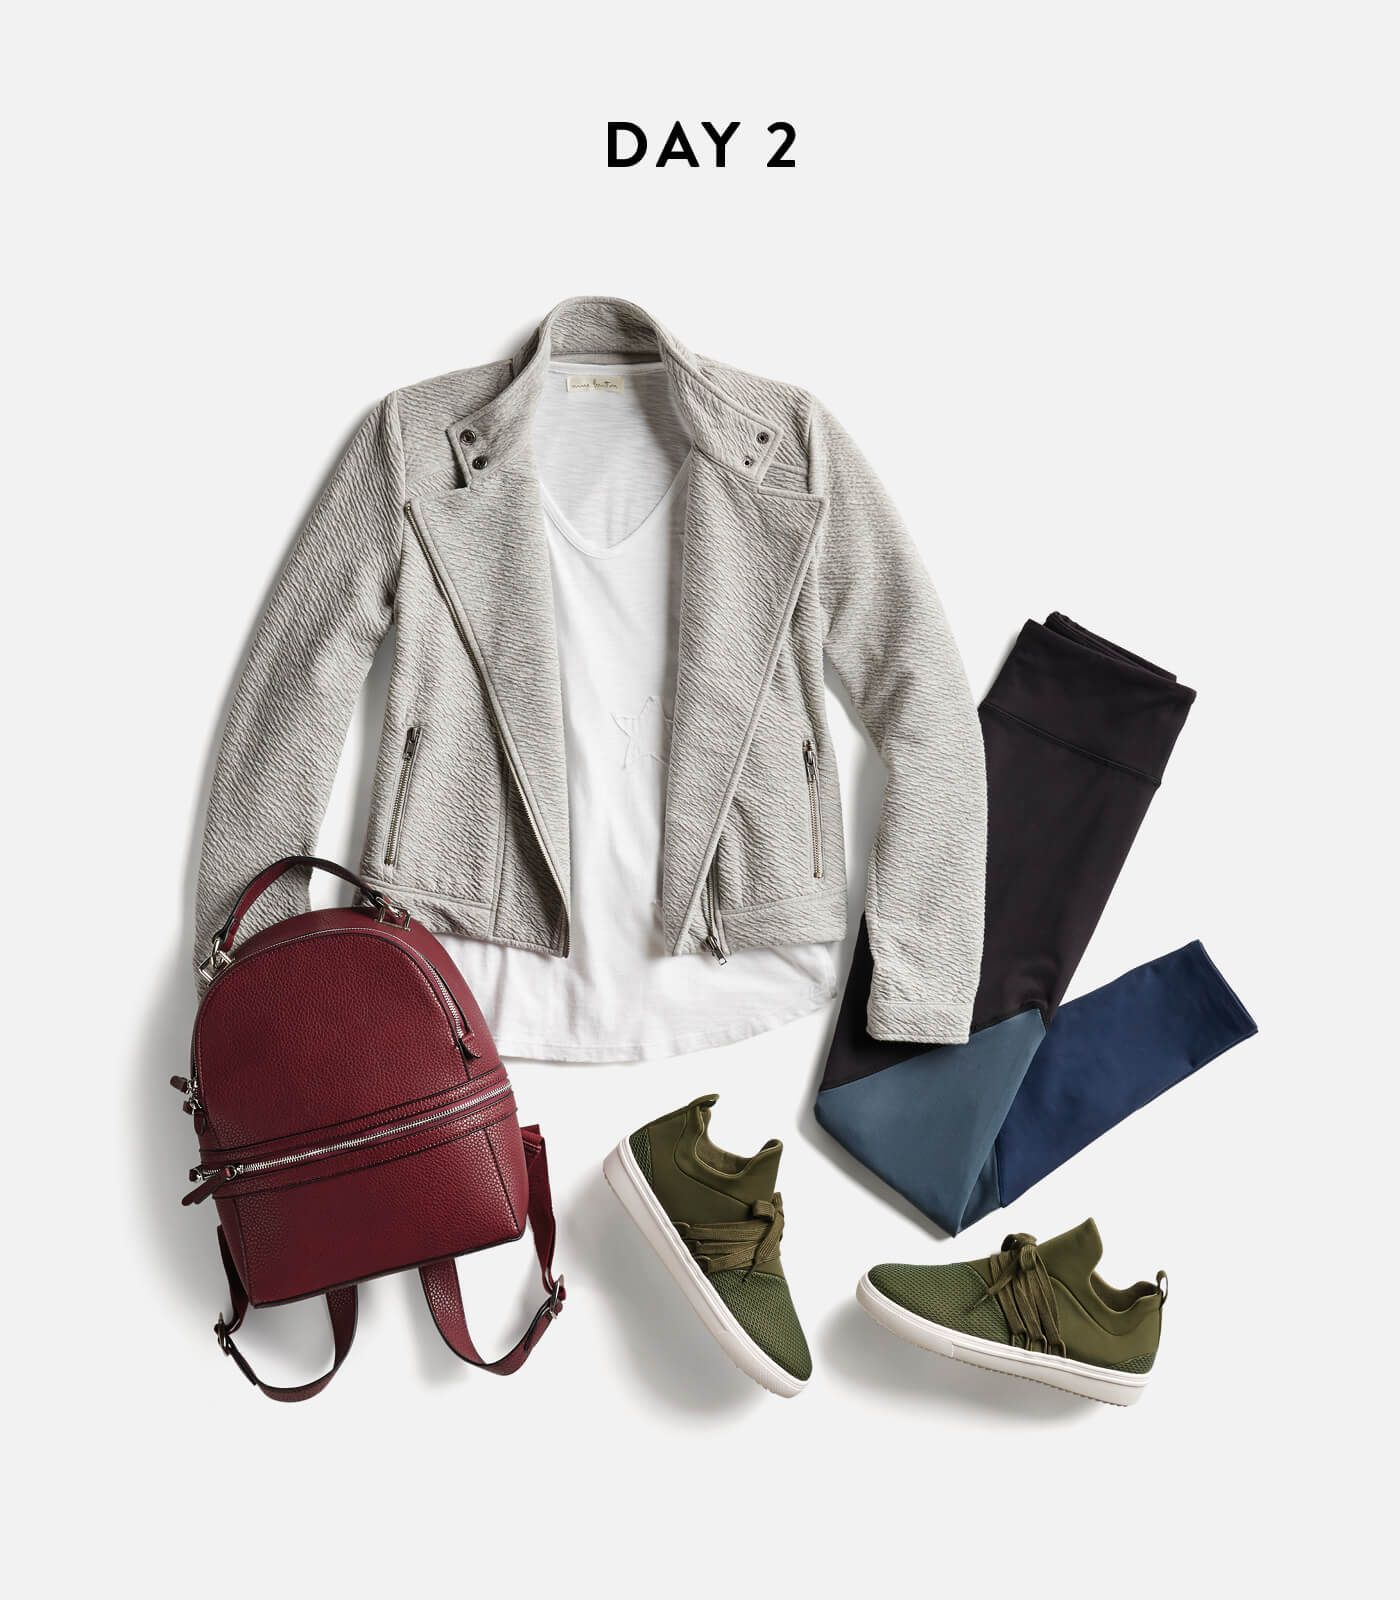 I really like these casualness of this outfit:  T-Shirt with a Nice Jacket/Blazer, Skinny Jeans (only I prefer mine distressed), and COOL Statement Sneakers!!!  Not crazy about the Backpack, except I do like the deep red color - just wished it was a medium size purse!